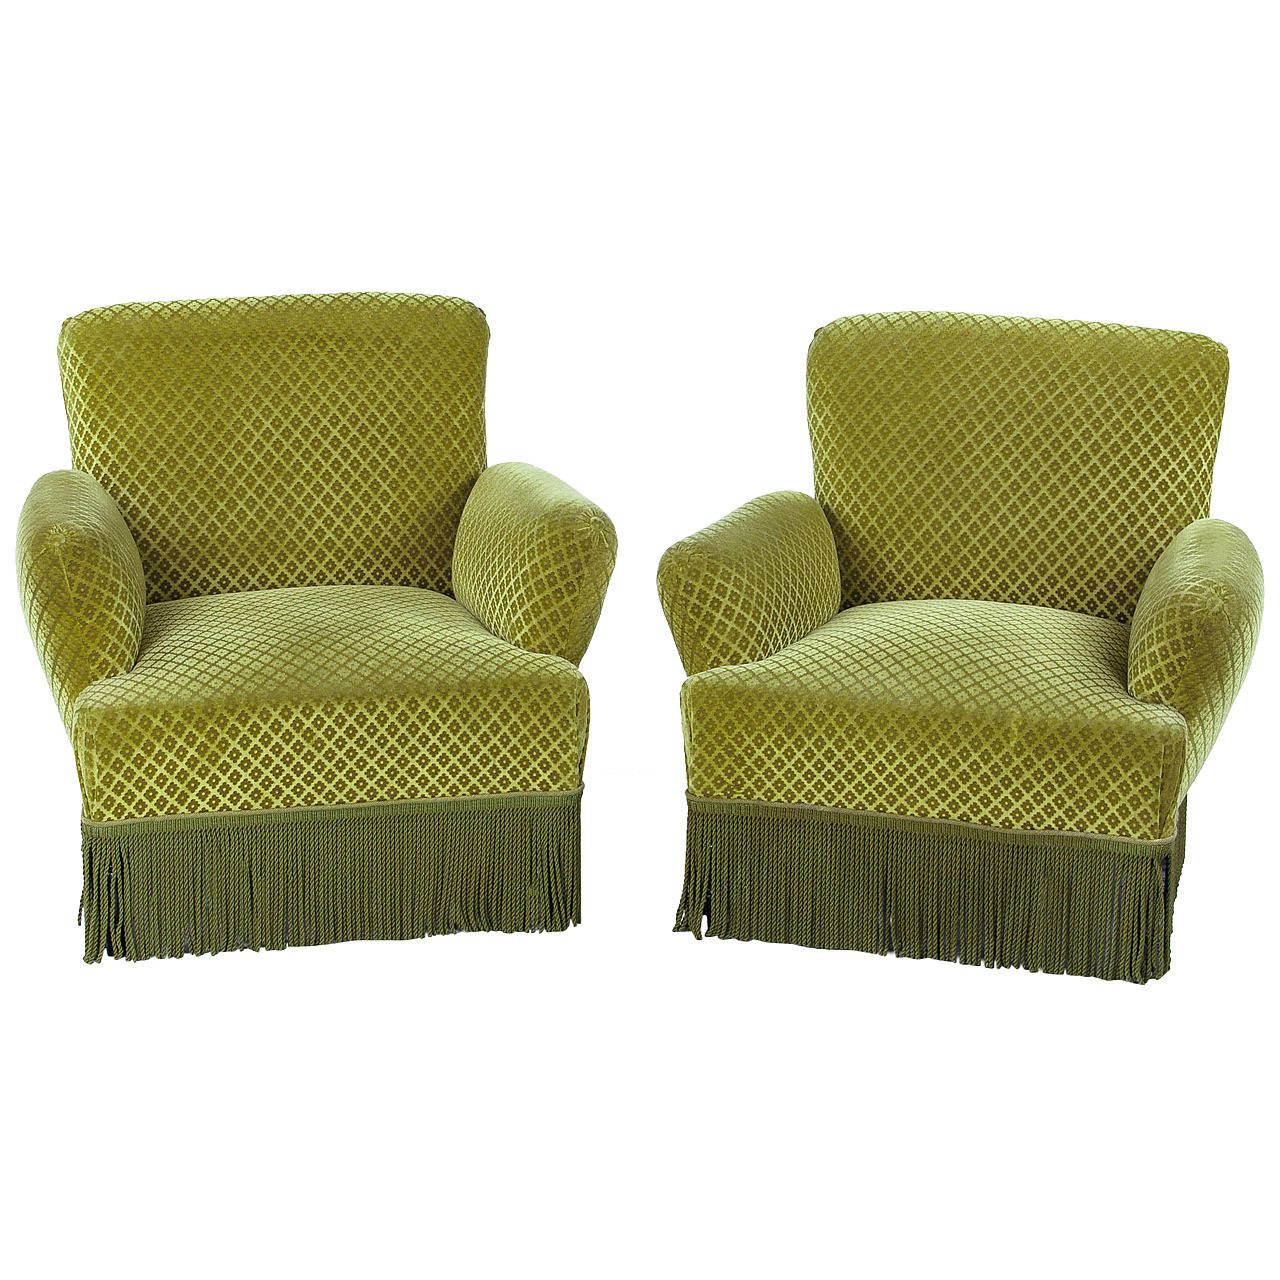 Pair of Napoleon III Style Green Upholstered Armchairs, 1940s